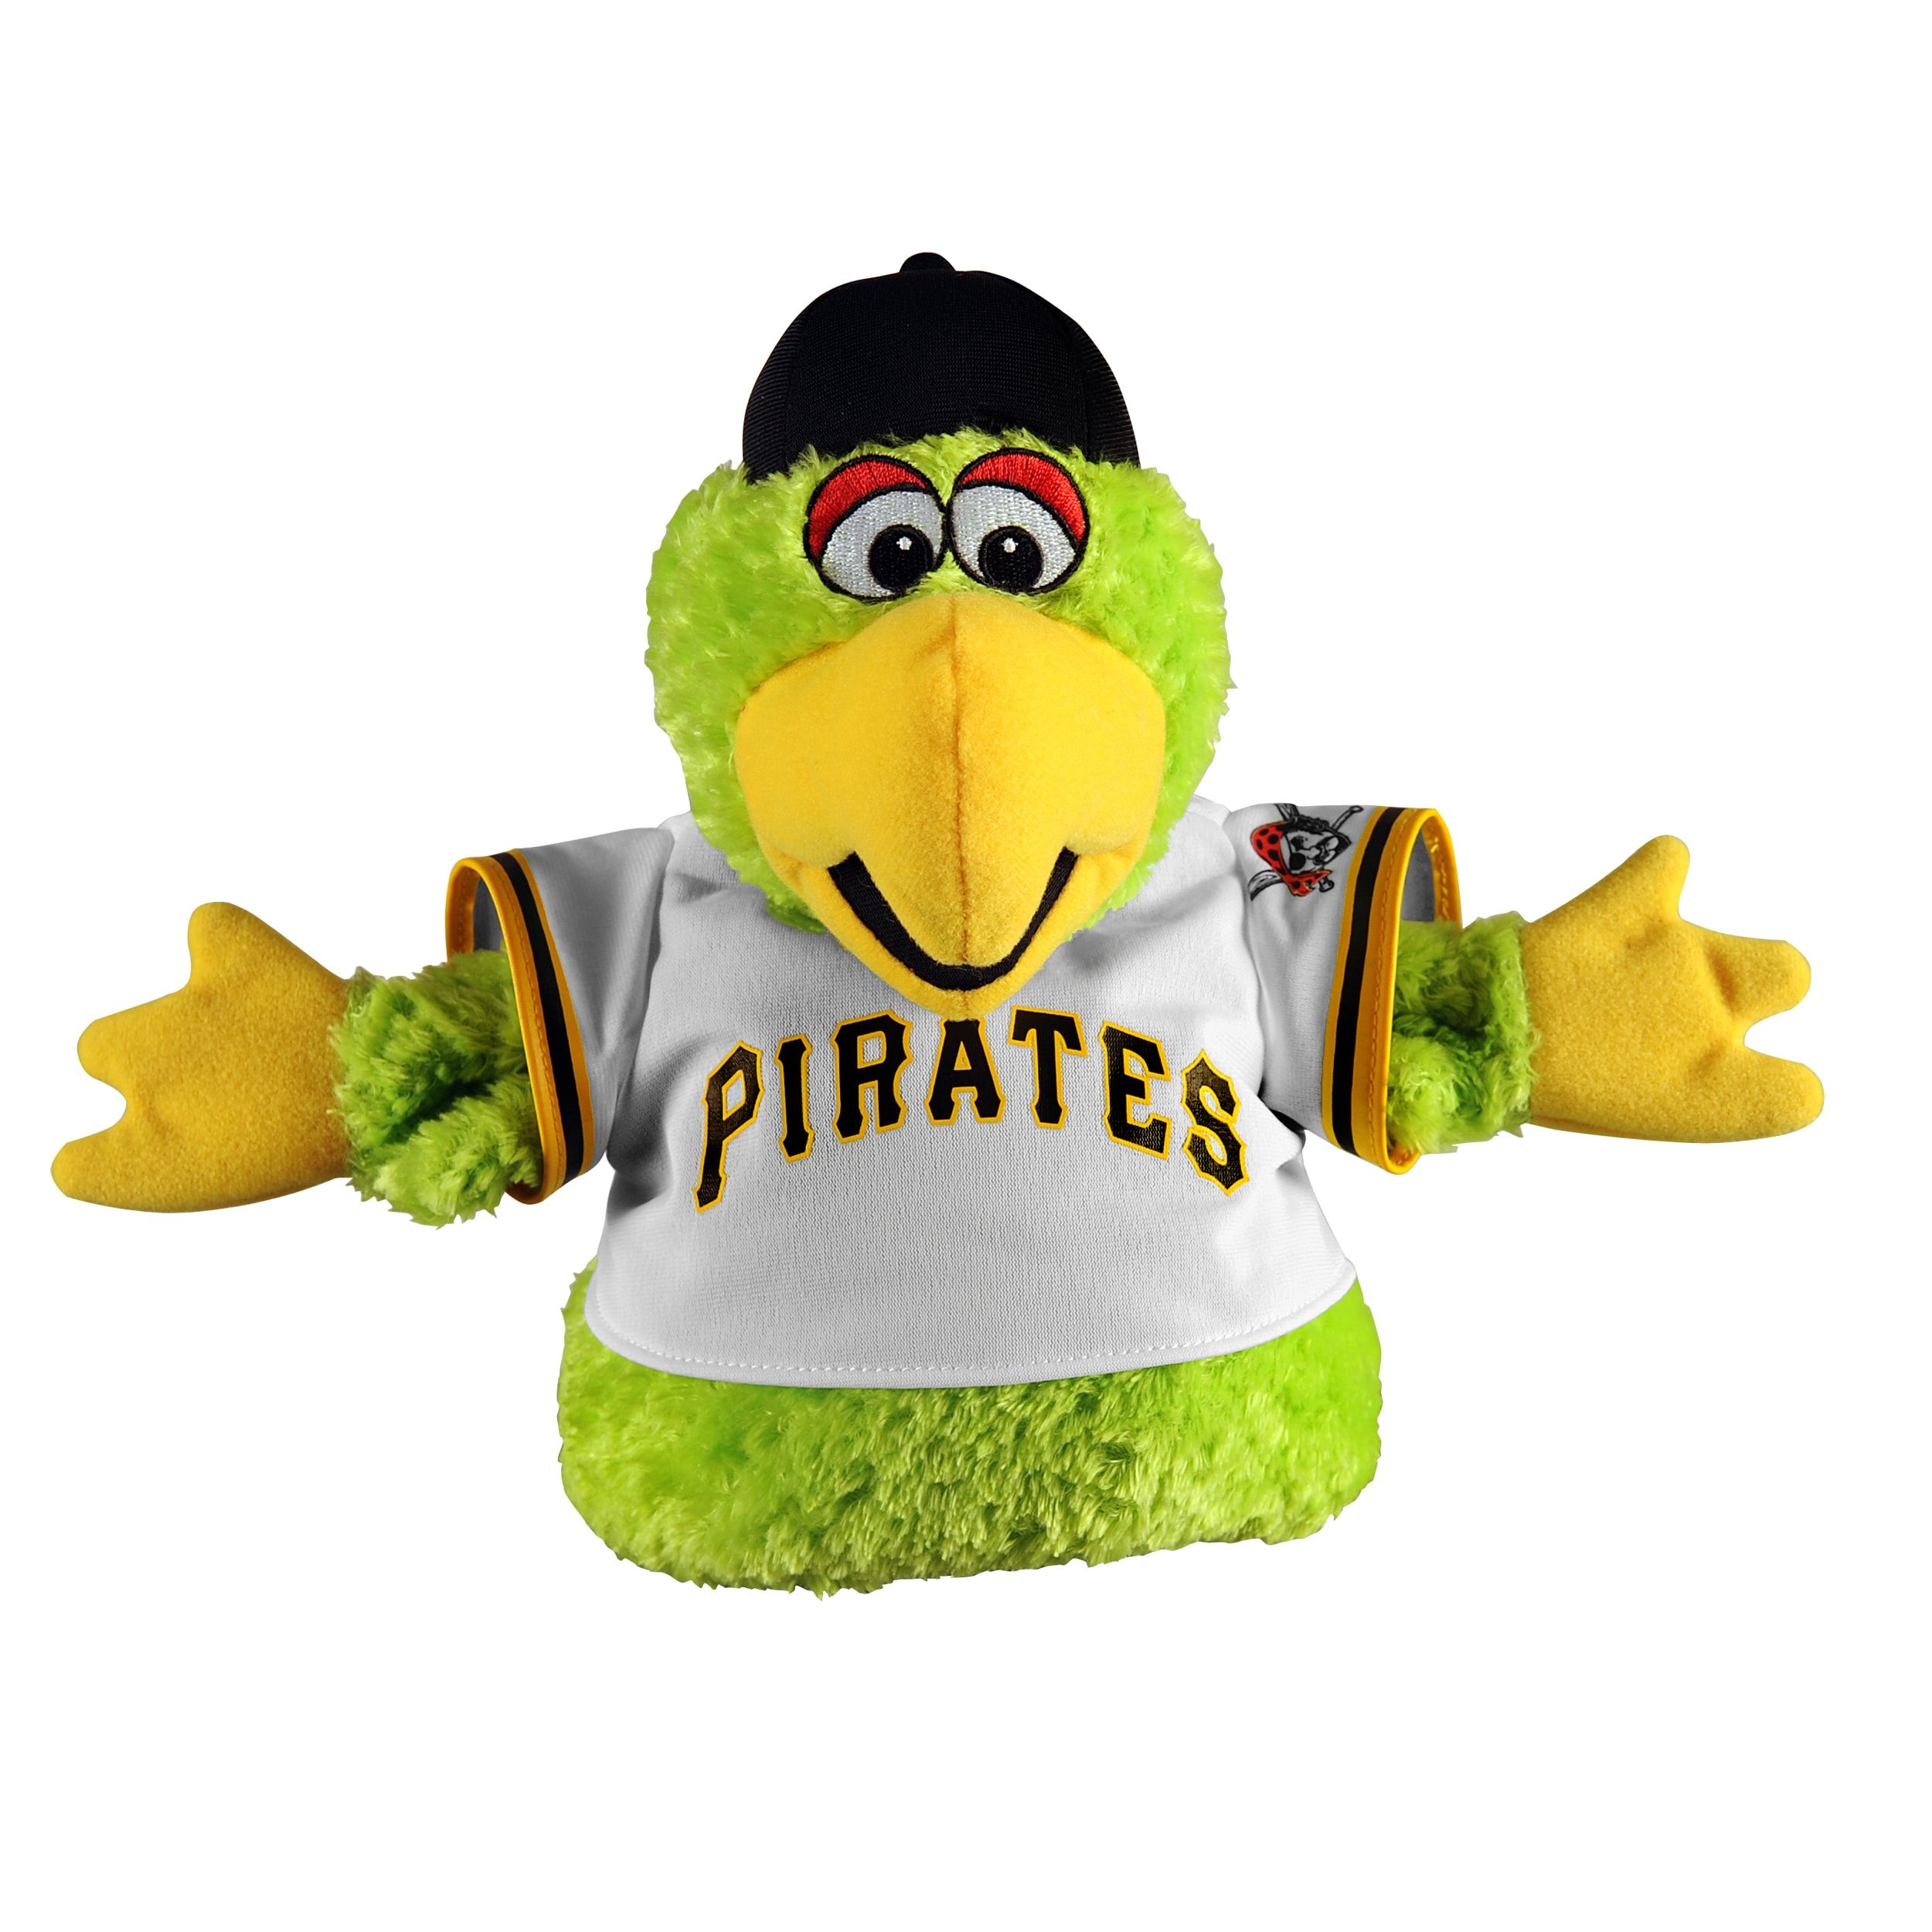 Pittsburgh Pirates 'Pirate Parrot' Mascot Hand Puppet